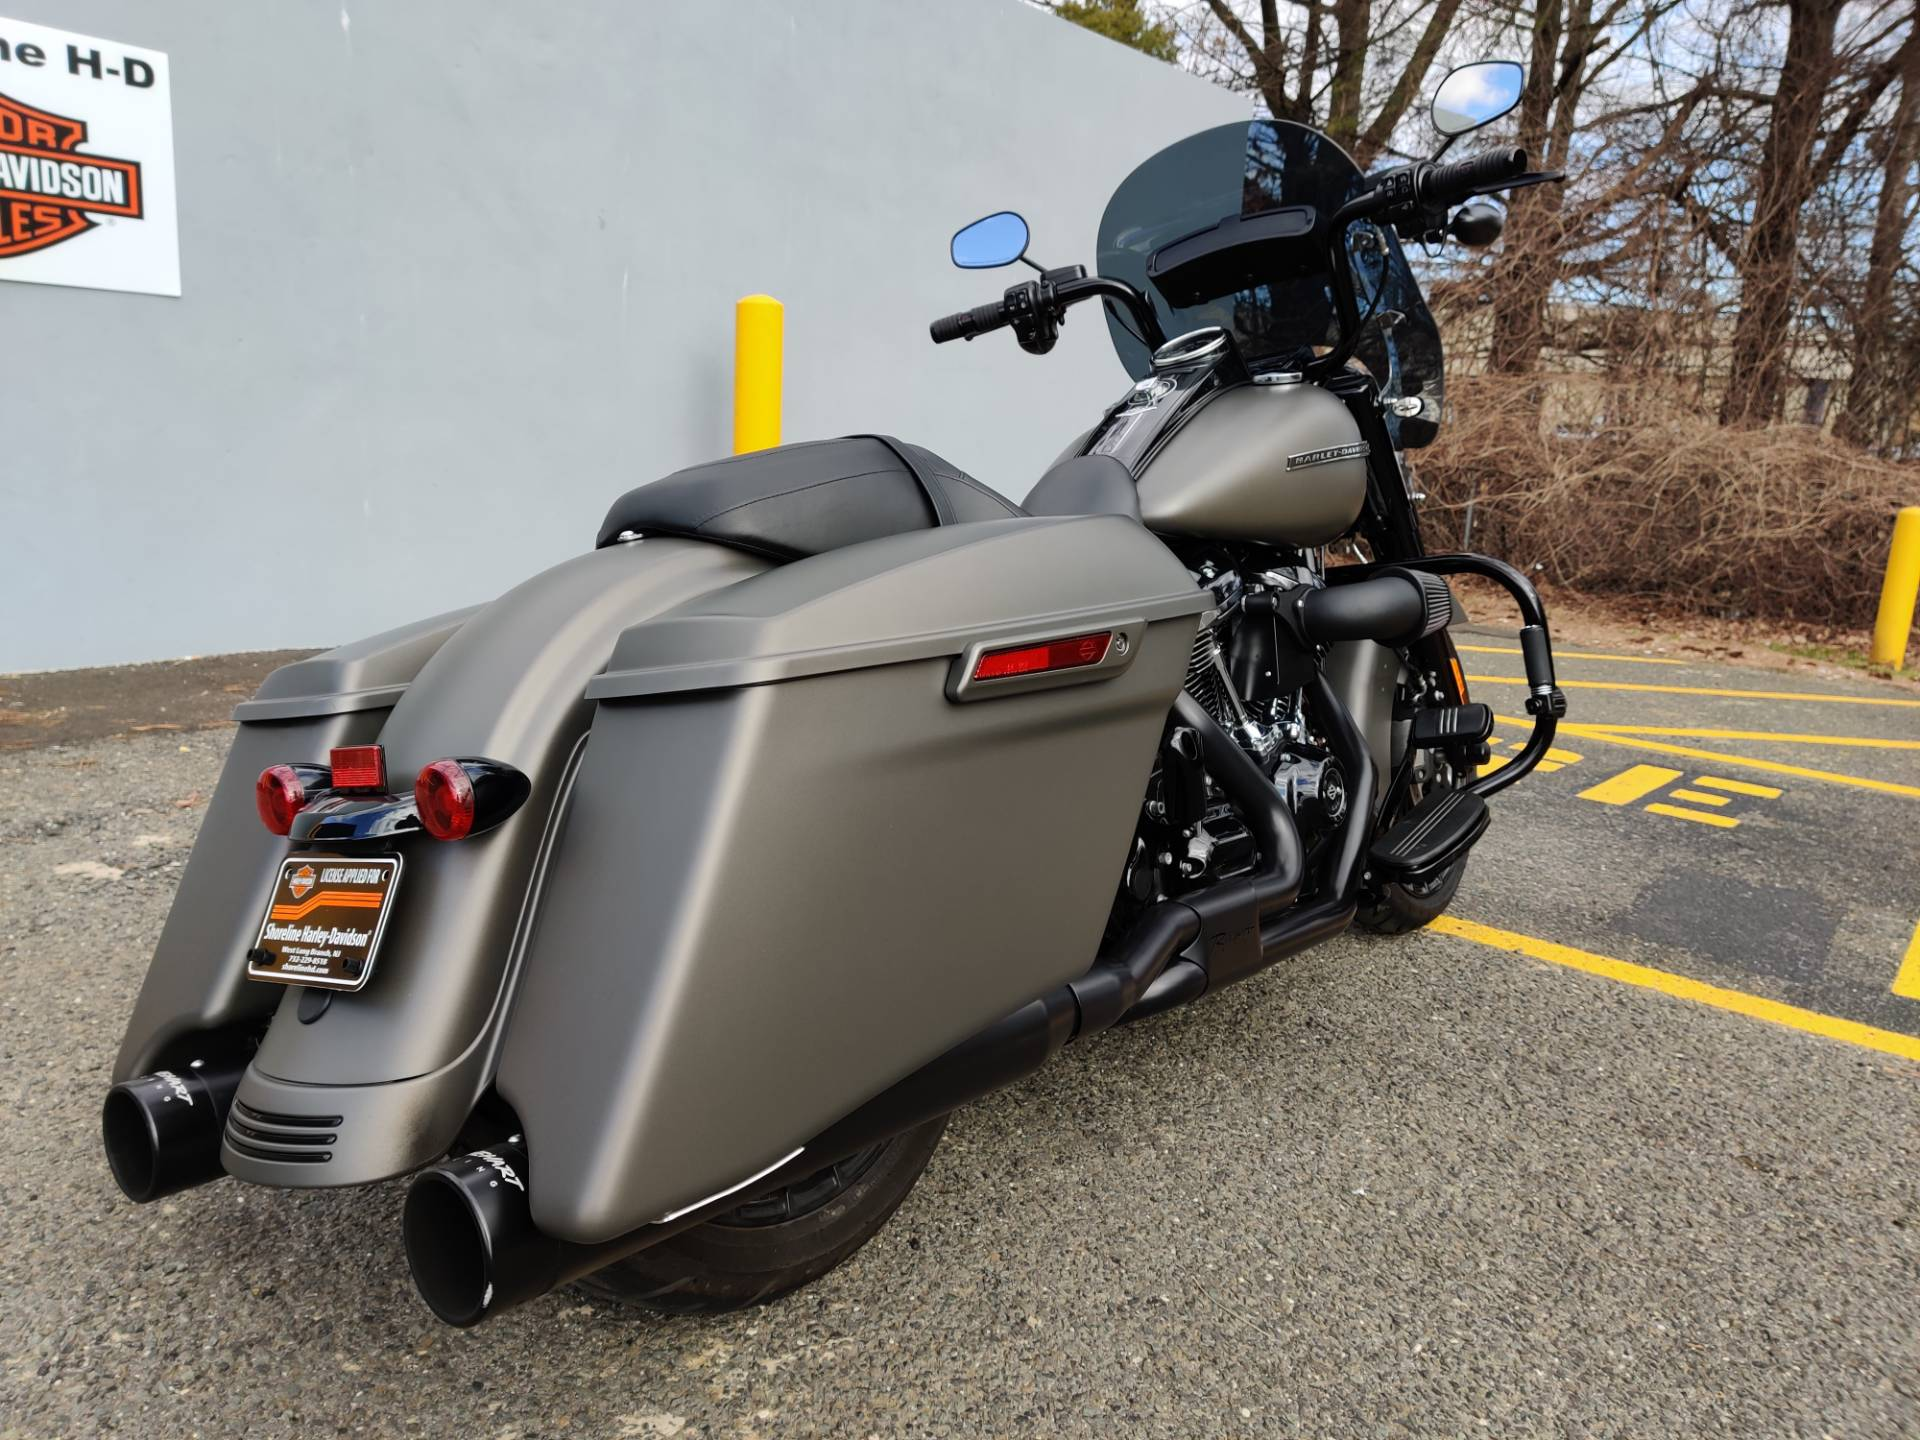 2018 Harley-Davidson Road King Special in West Long Branch, New Jersey - Photo 8